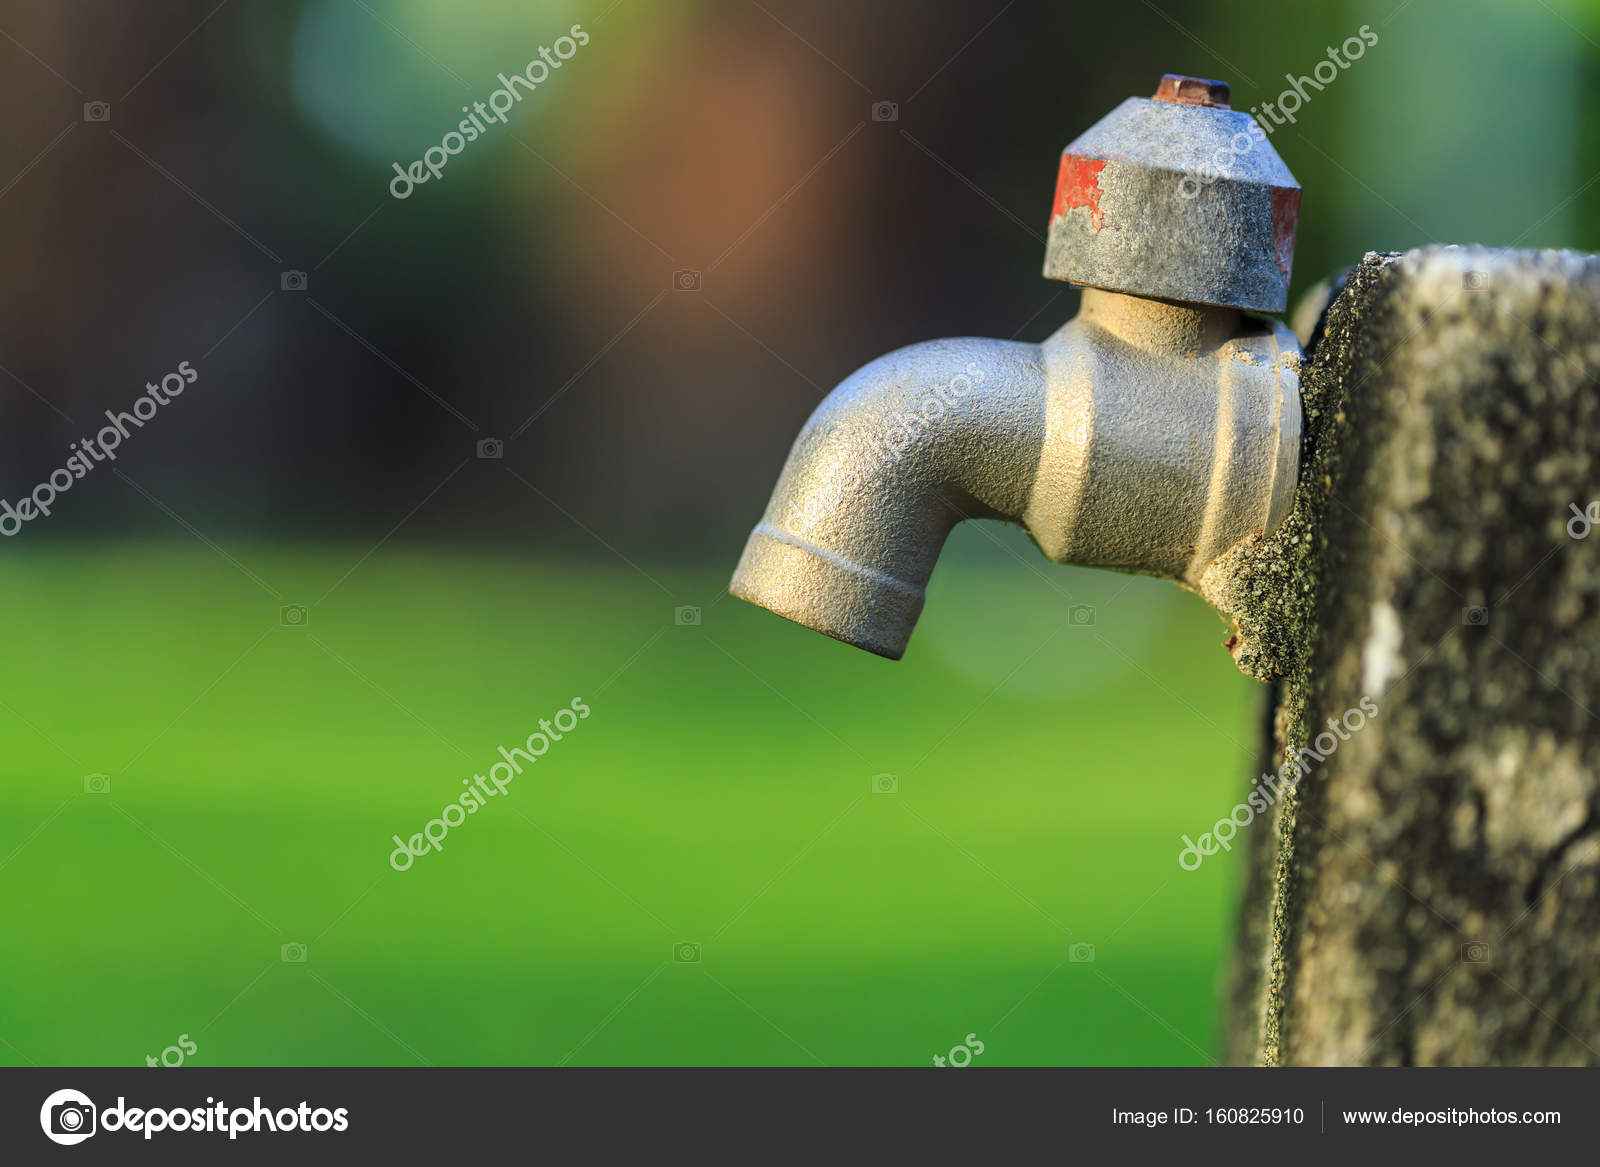 Old outdoor faucet without water in garden on green blur backgro ...